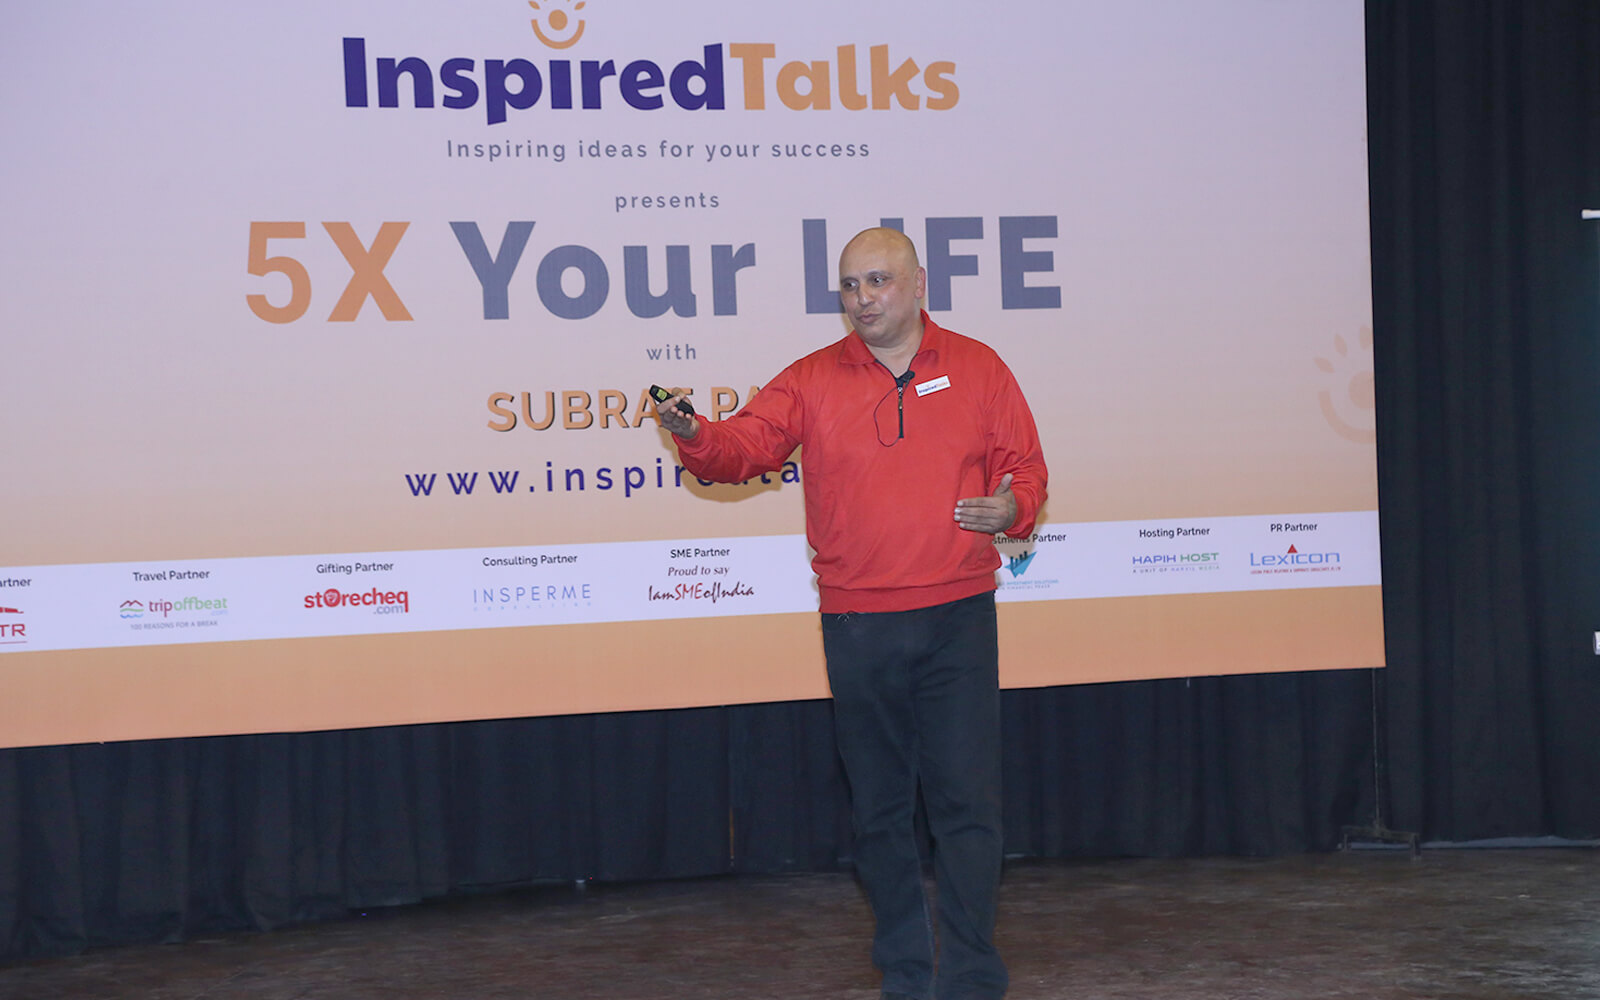 Press Release – 5X Your Life An event by The Inspired Talks